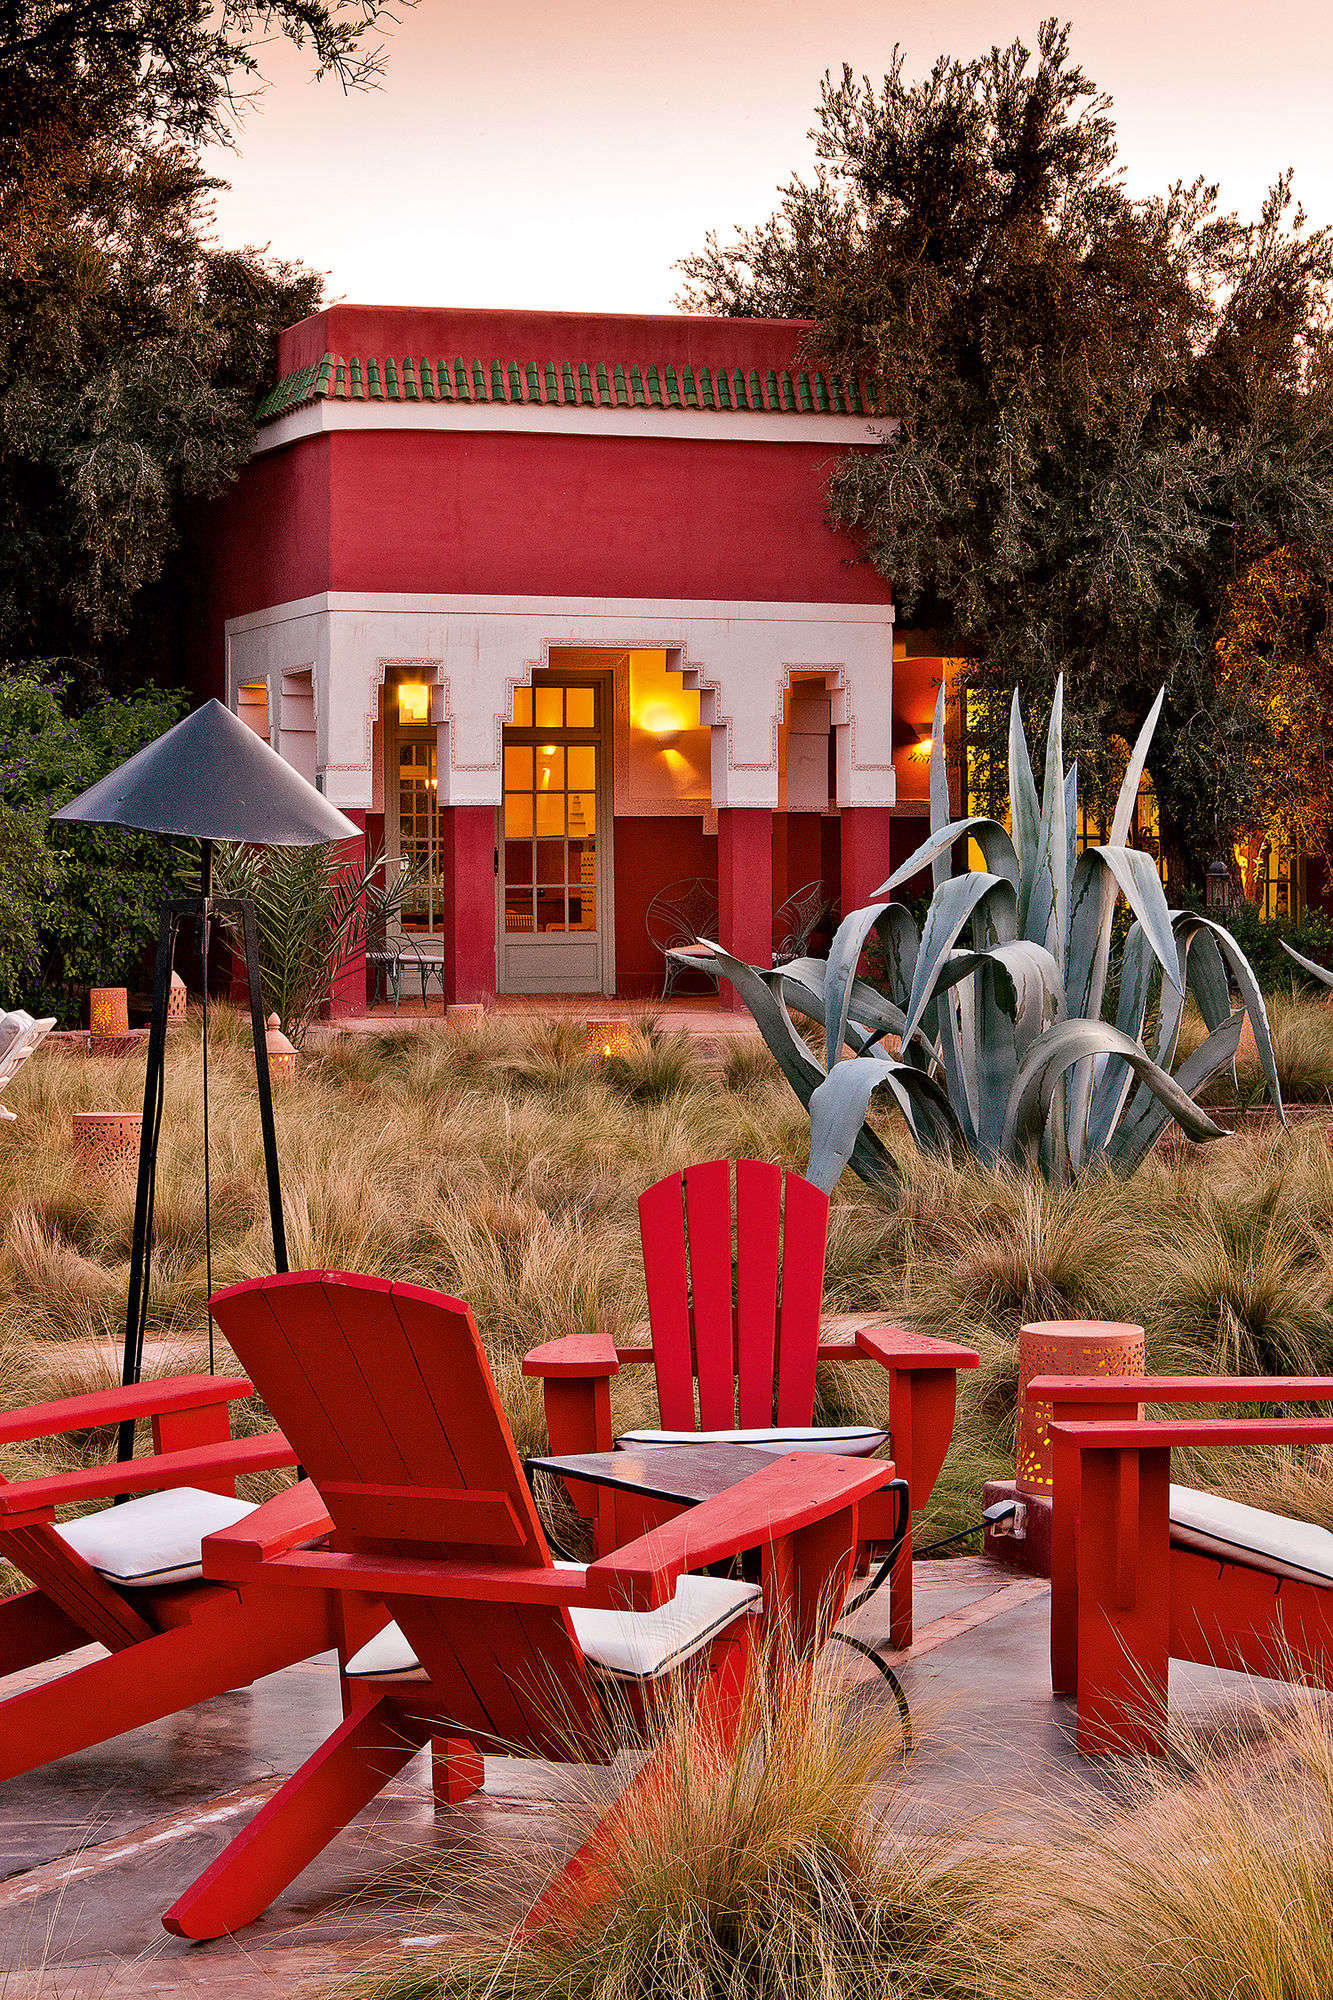 The Grass Garden at the Beldi Country Club, with a giant agave.